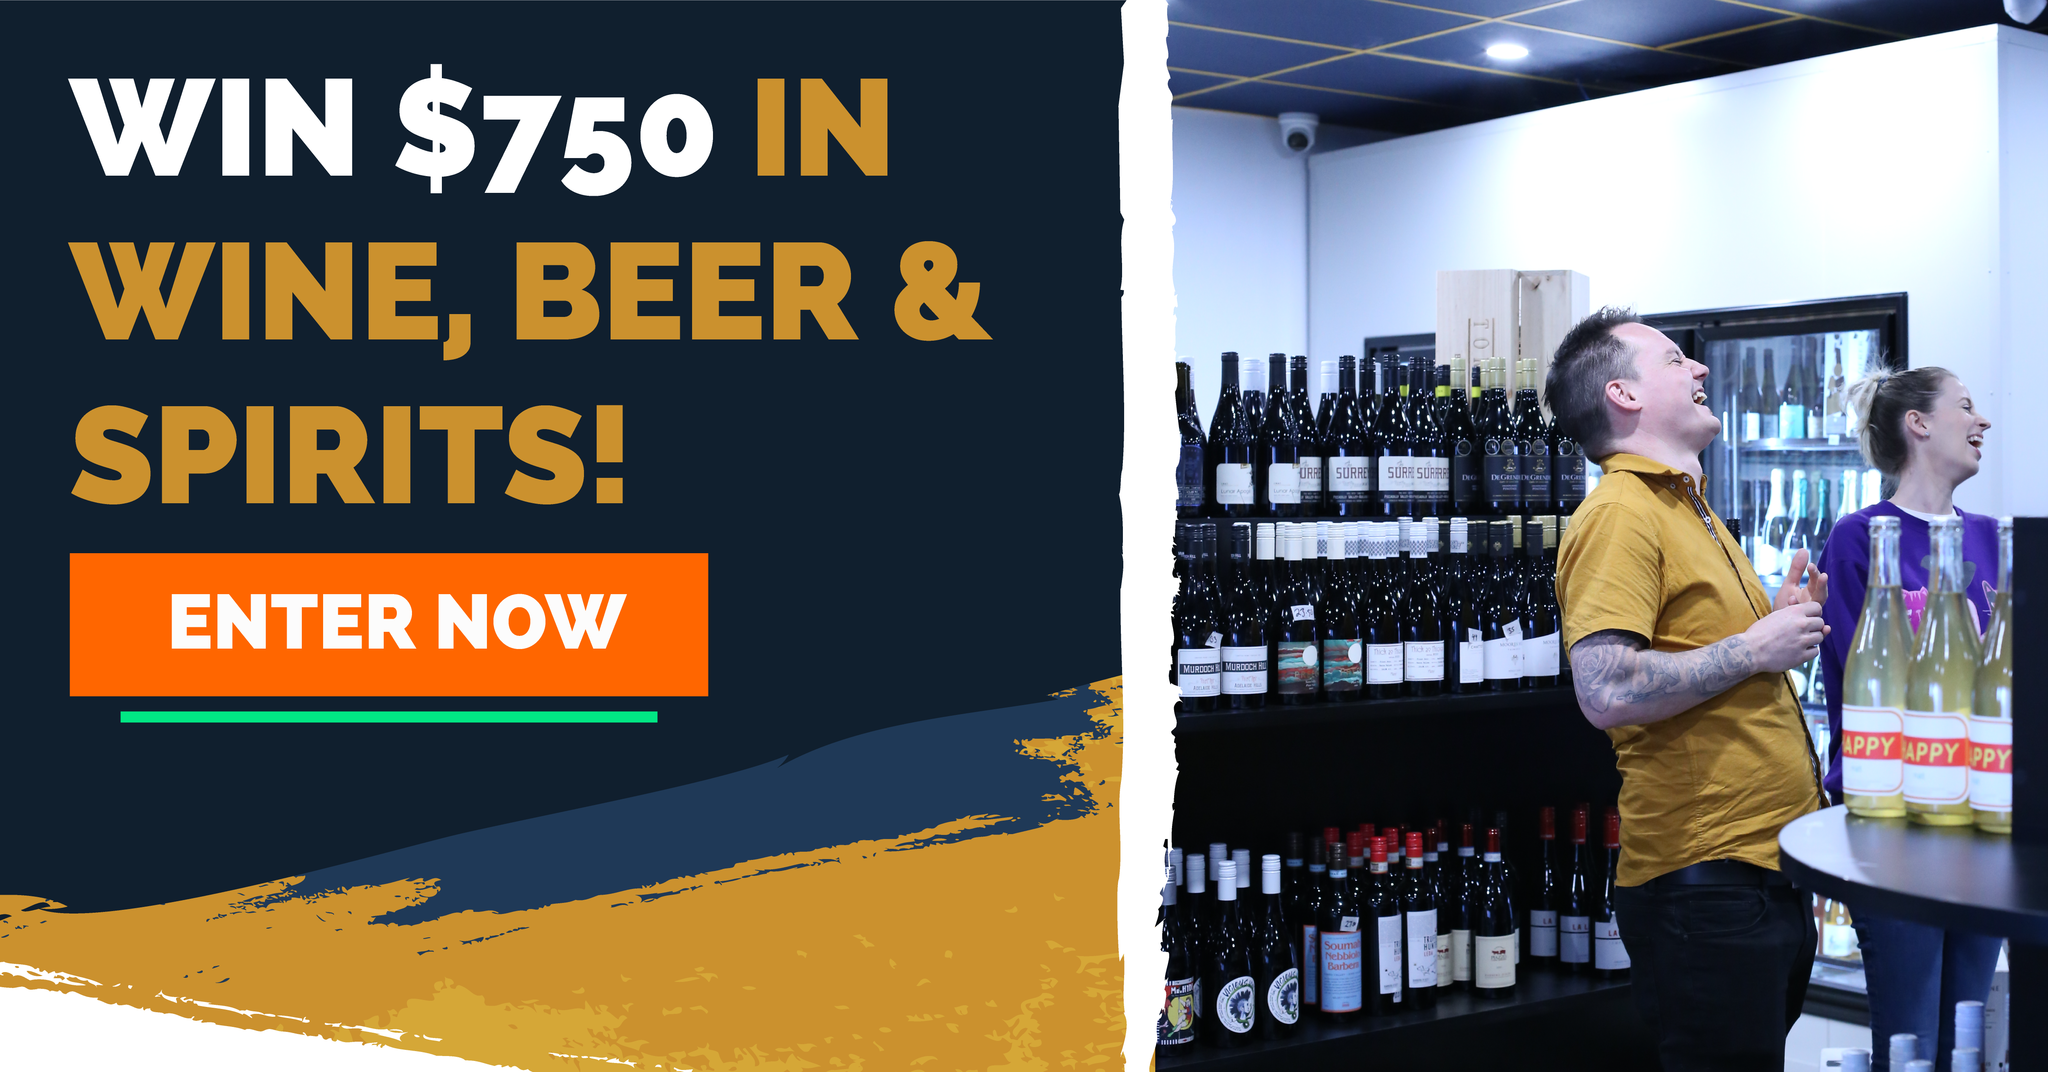 Win $750 in beer, wine and spirits with Flask Bottleshop in Boondall